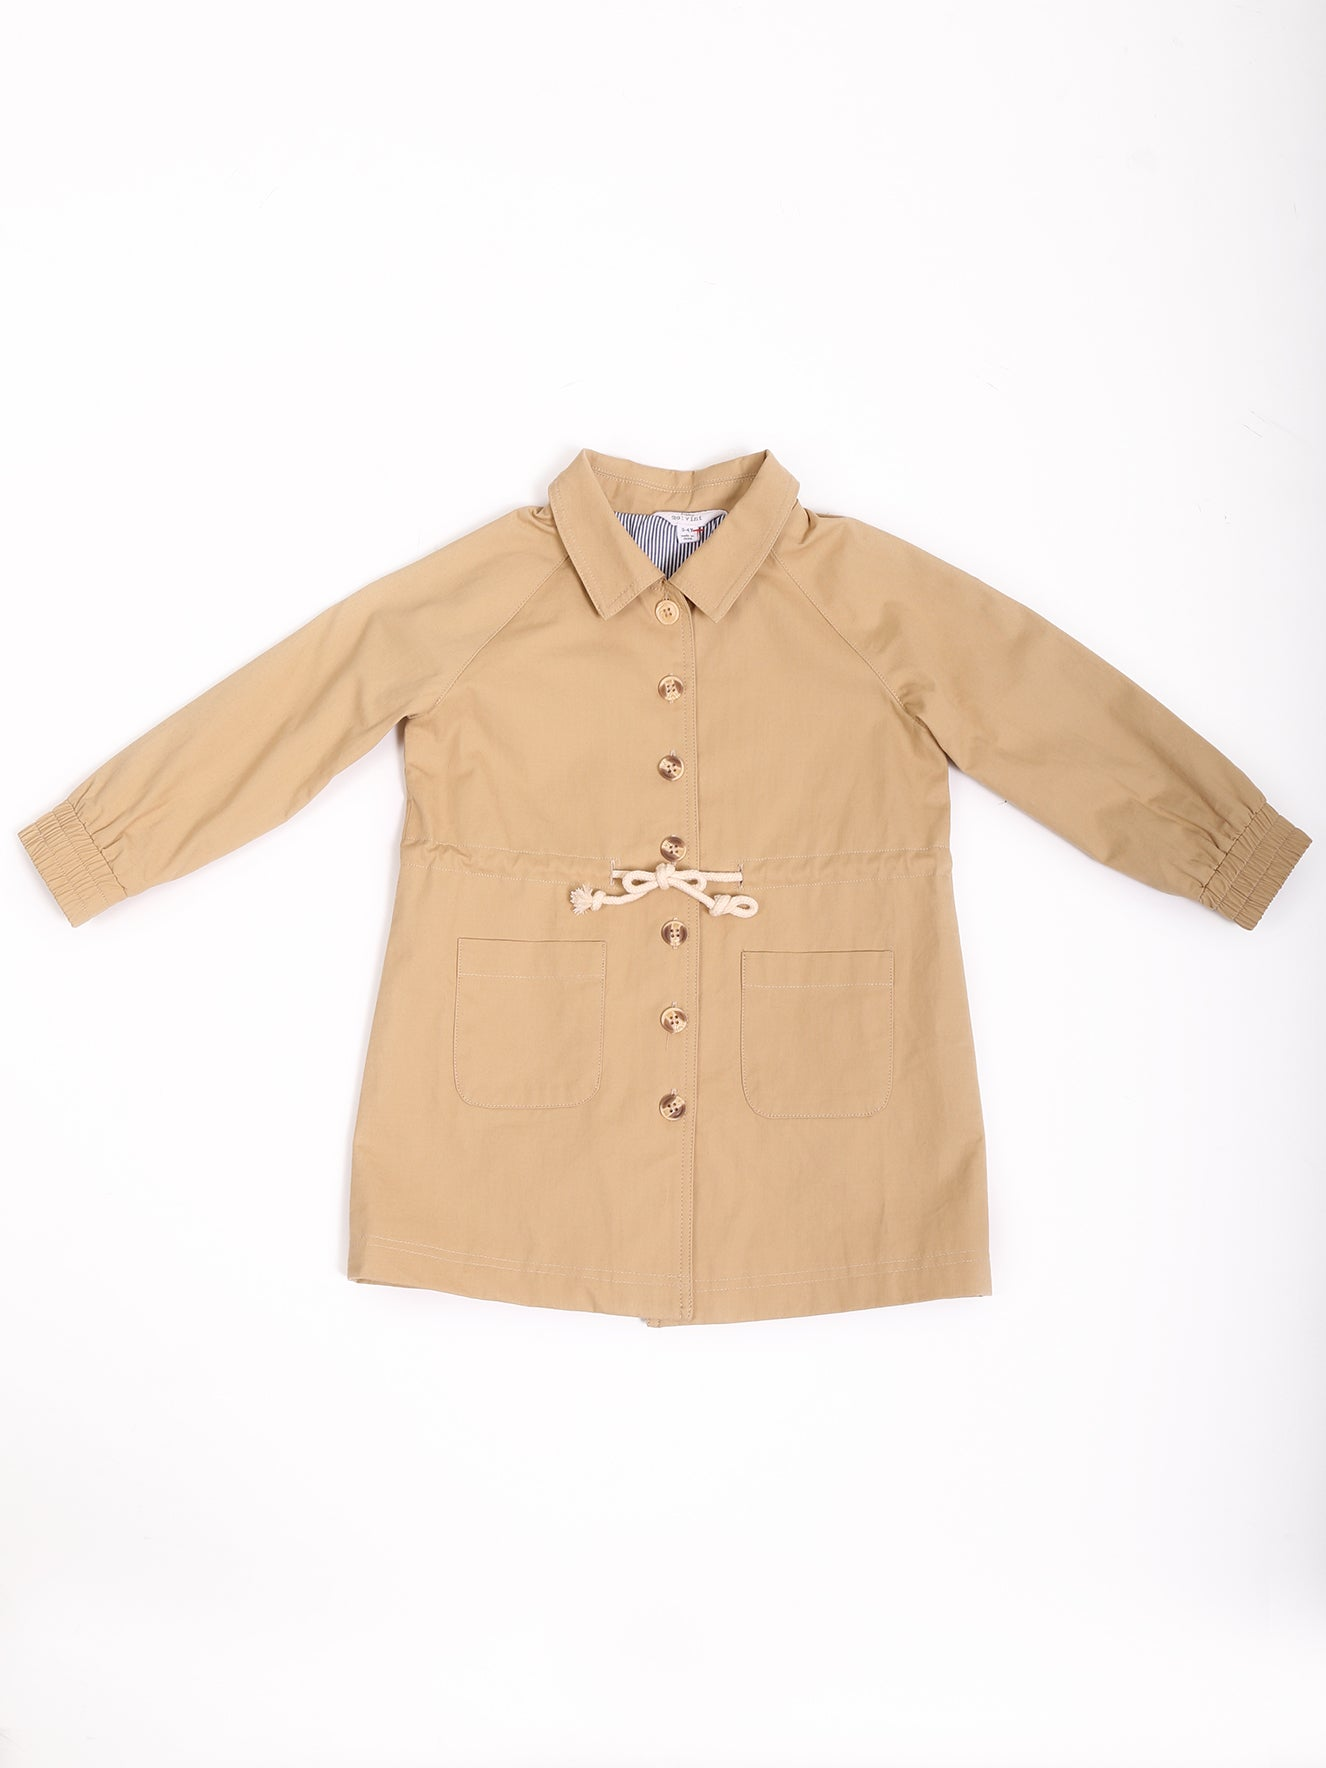 Waist Drawstring Detail Coat